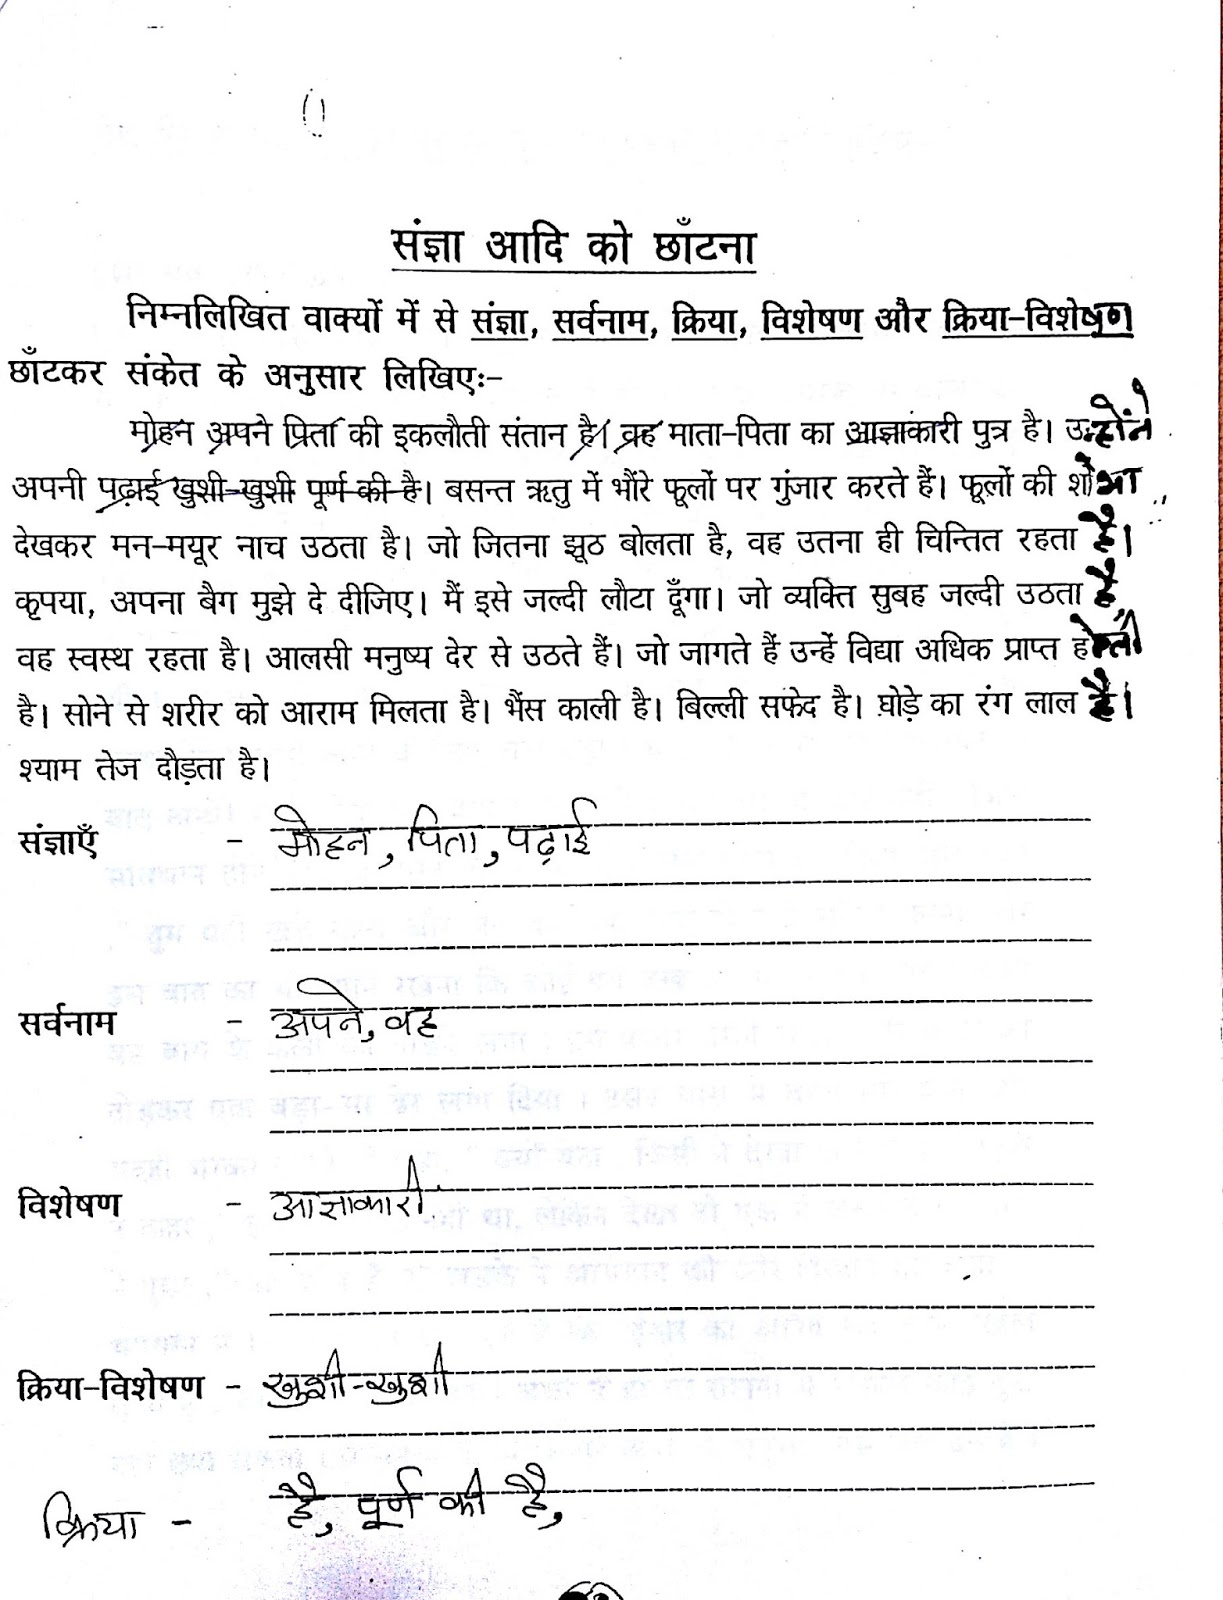 hindi grammar worksheet for grade 2 worksheets for class 2 hindi cbse grade 1 english grammar. Black Bedroom Furniture Sets. Home Design Ideas